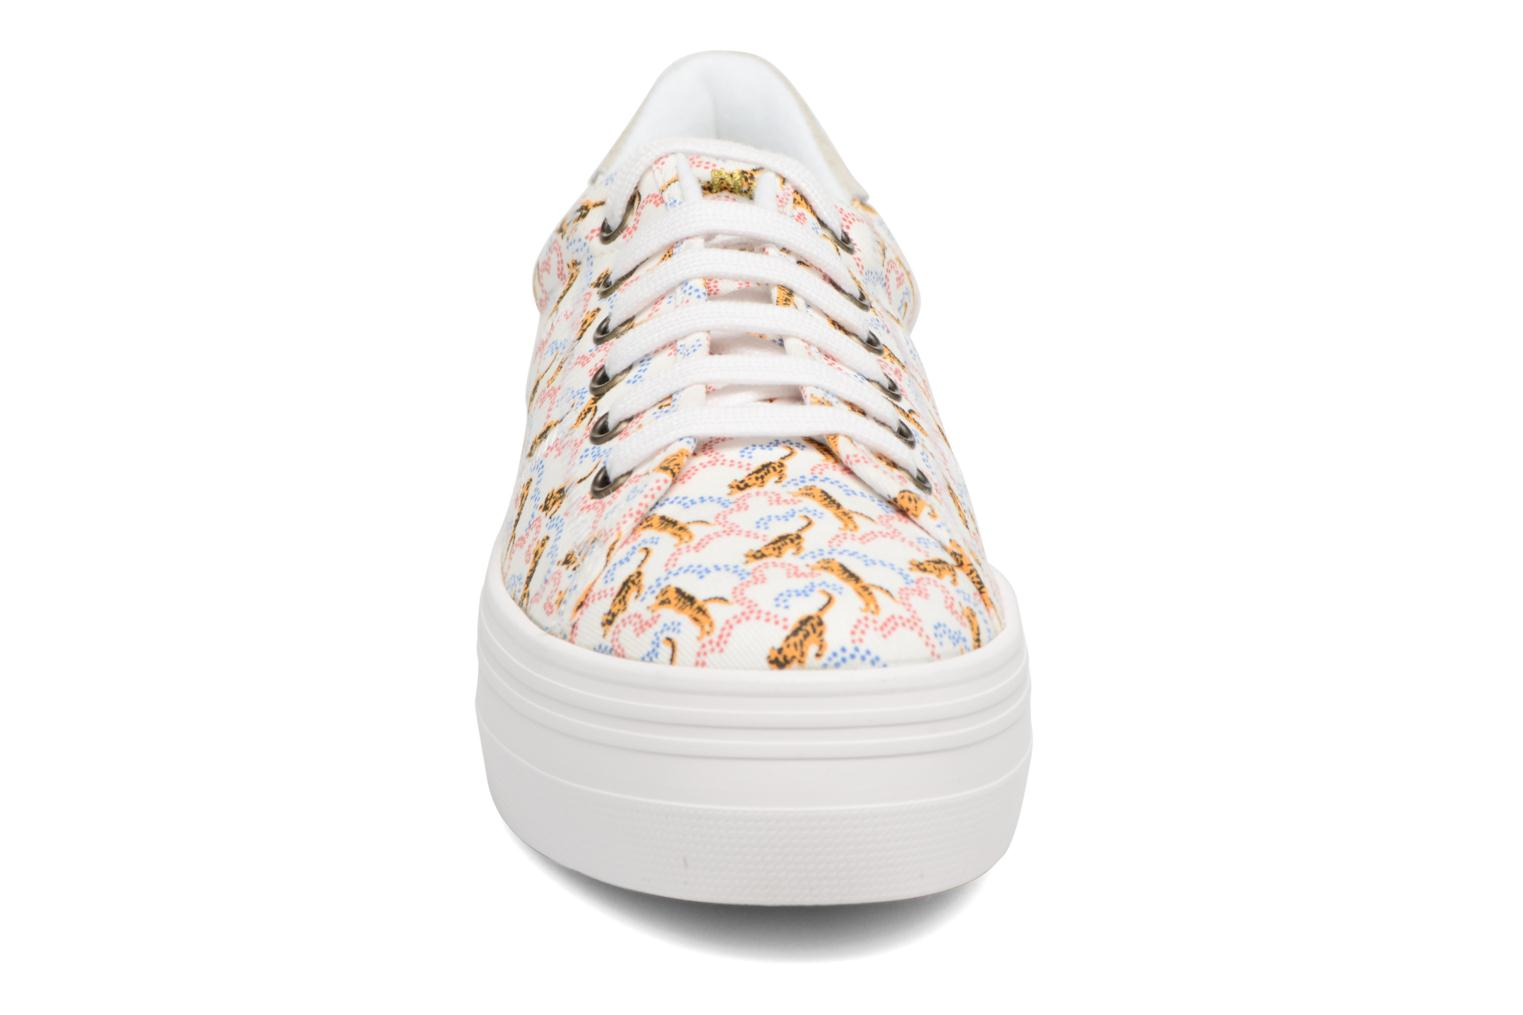 Sneakers No Name Plato sneaker pink twill print tiger Wit model